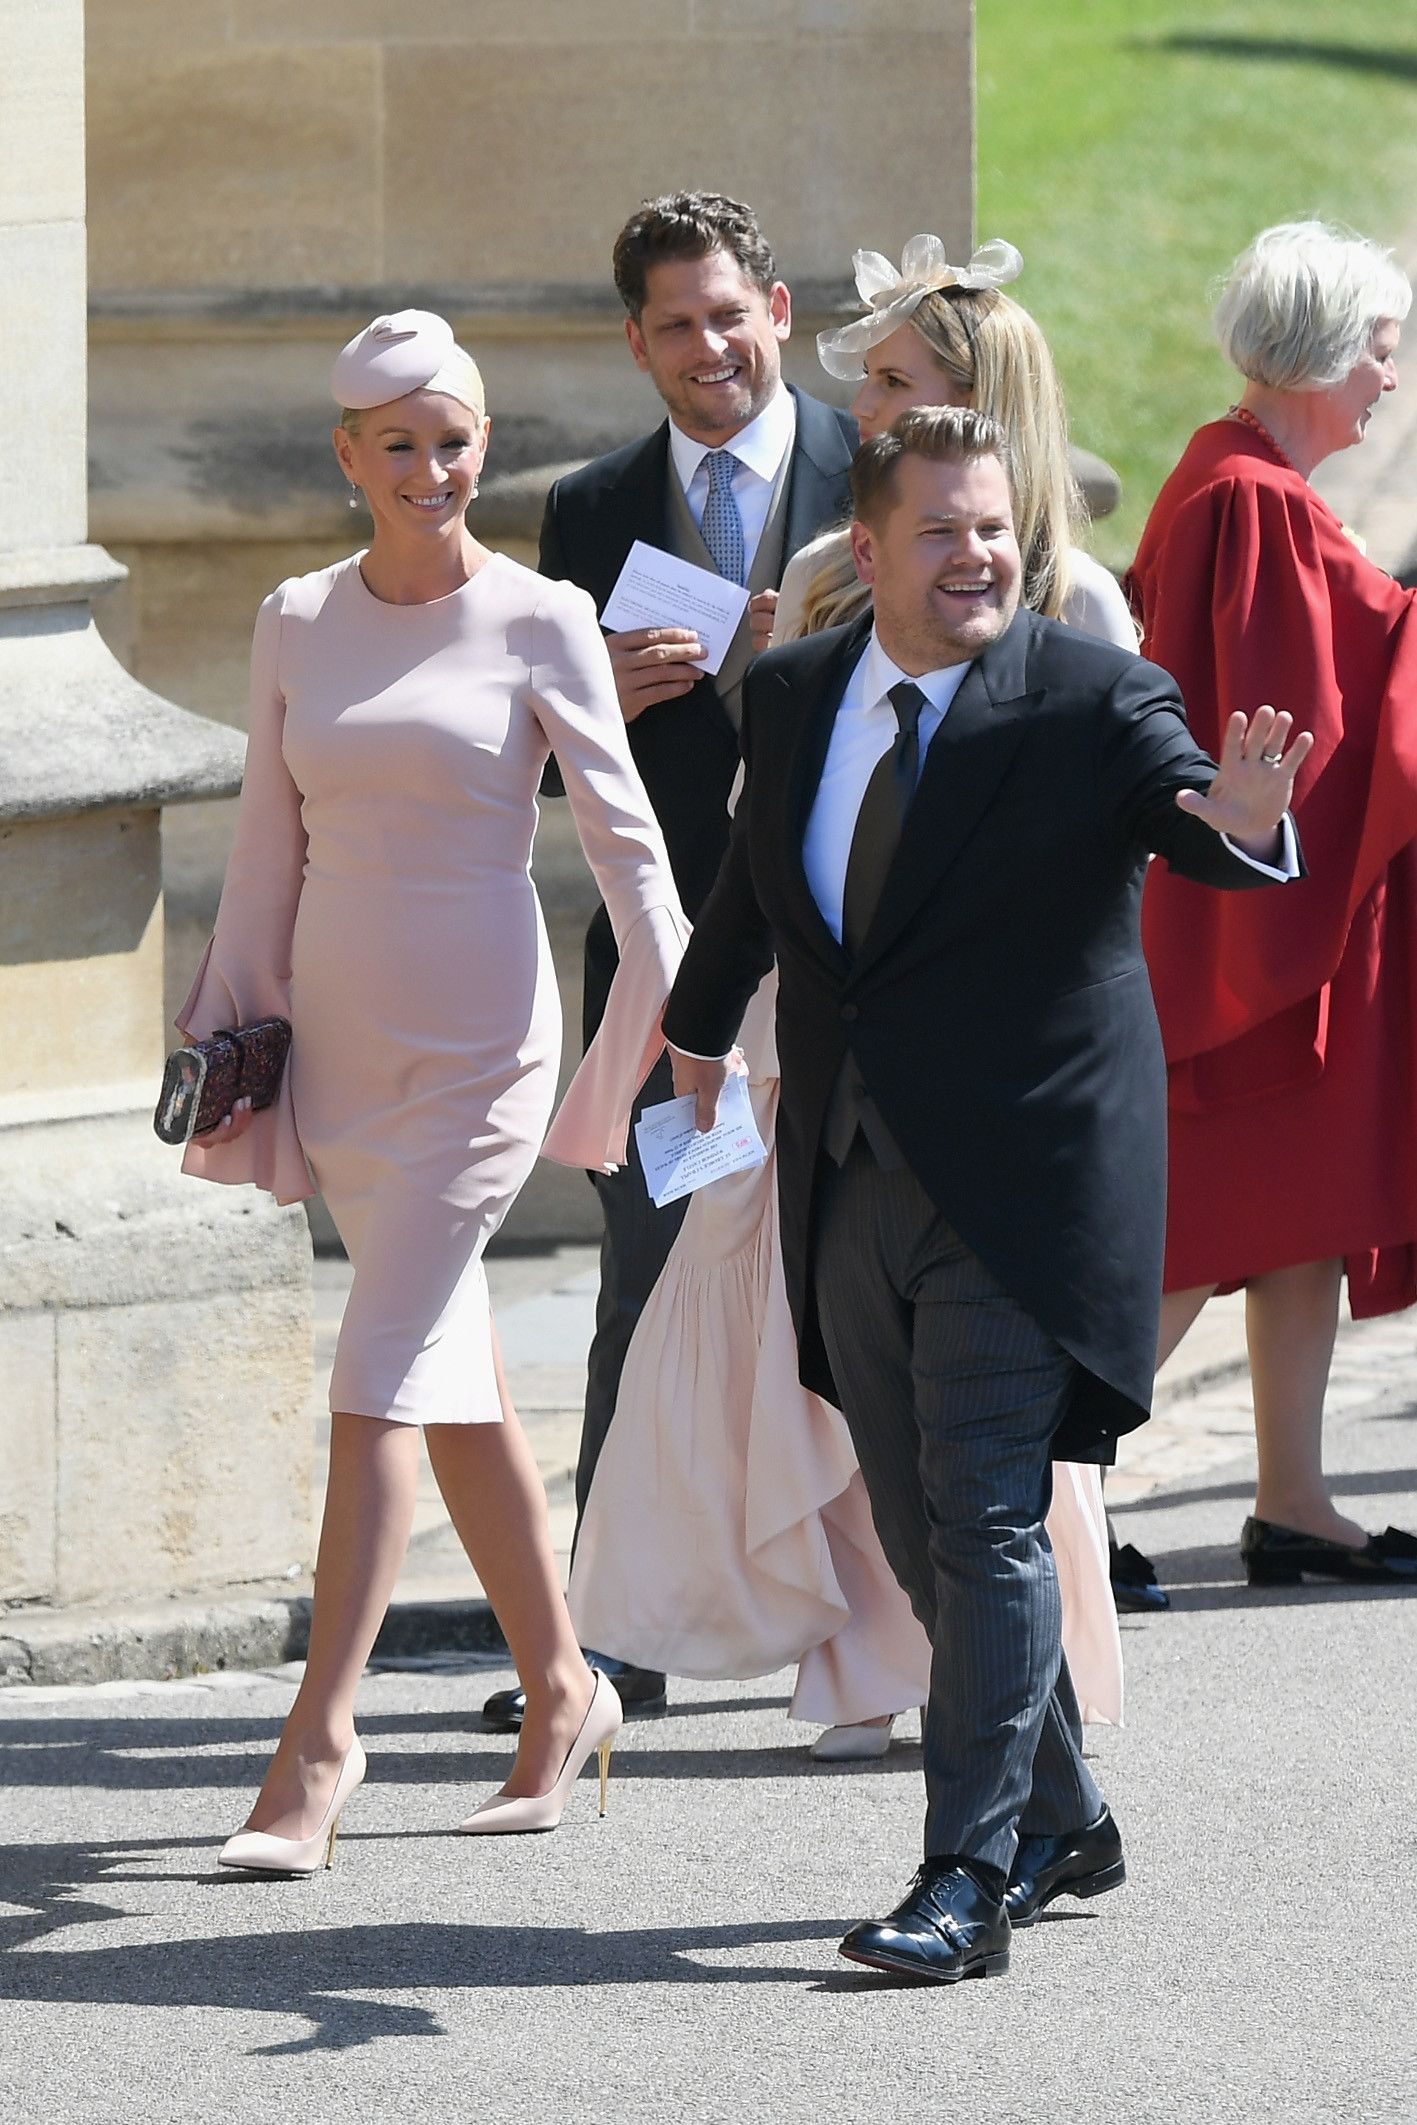 British Comedian James Corden Arrived At The Royal Wedding With Julia Carey His Wife Of Five Years Like Prince William A Royal Wedding Wedding Wedding Attire [ 2125 x 1417 Pixel ]